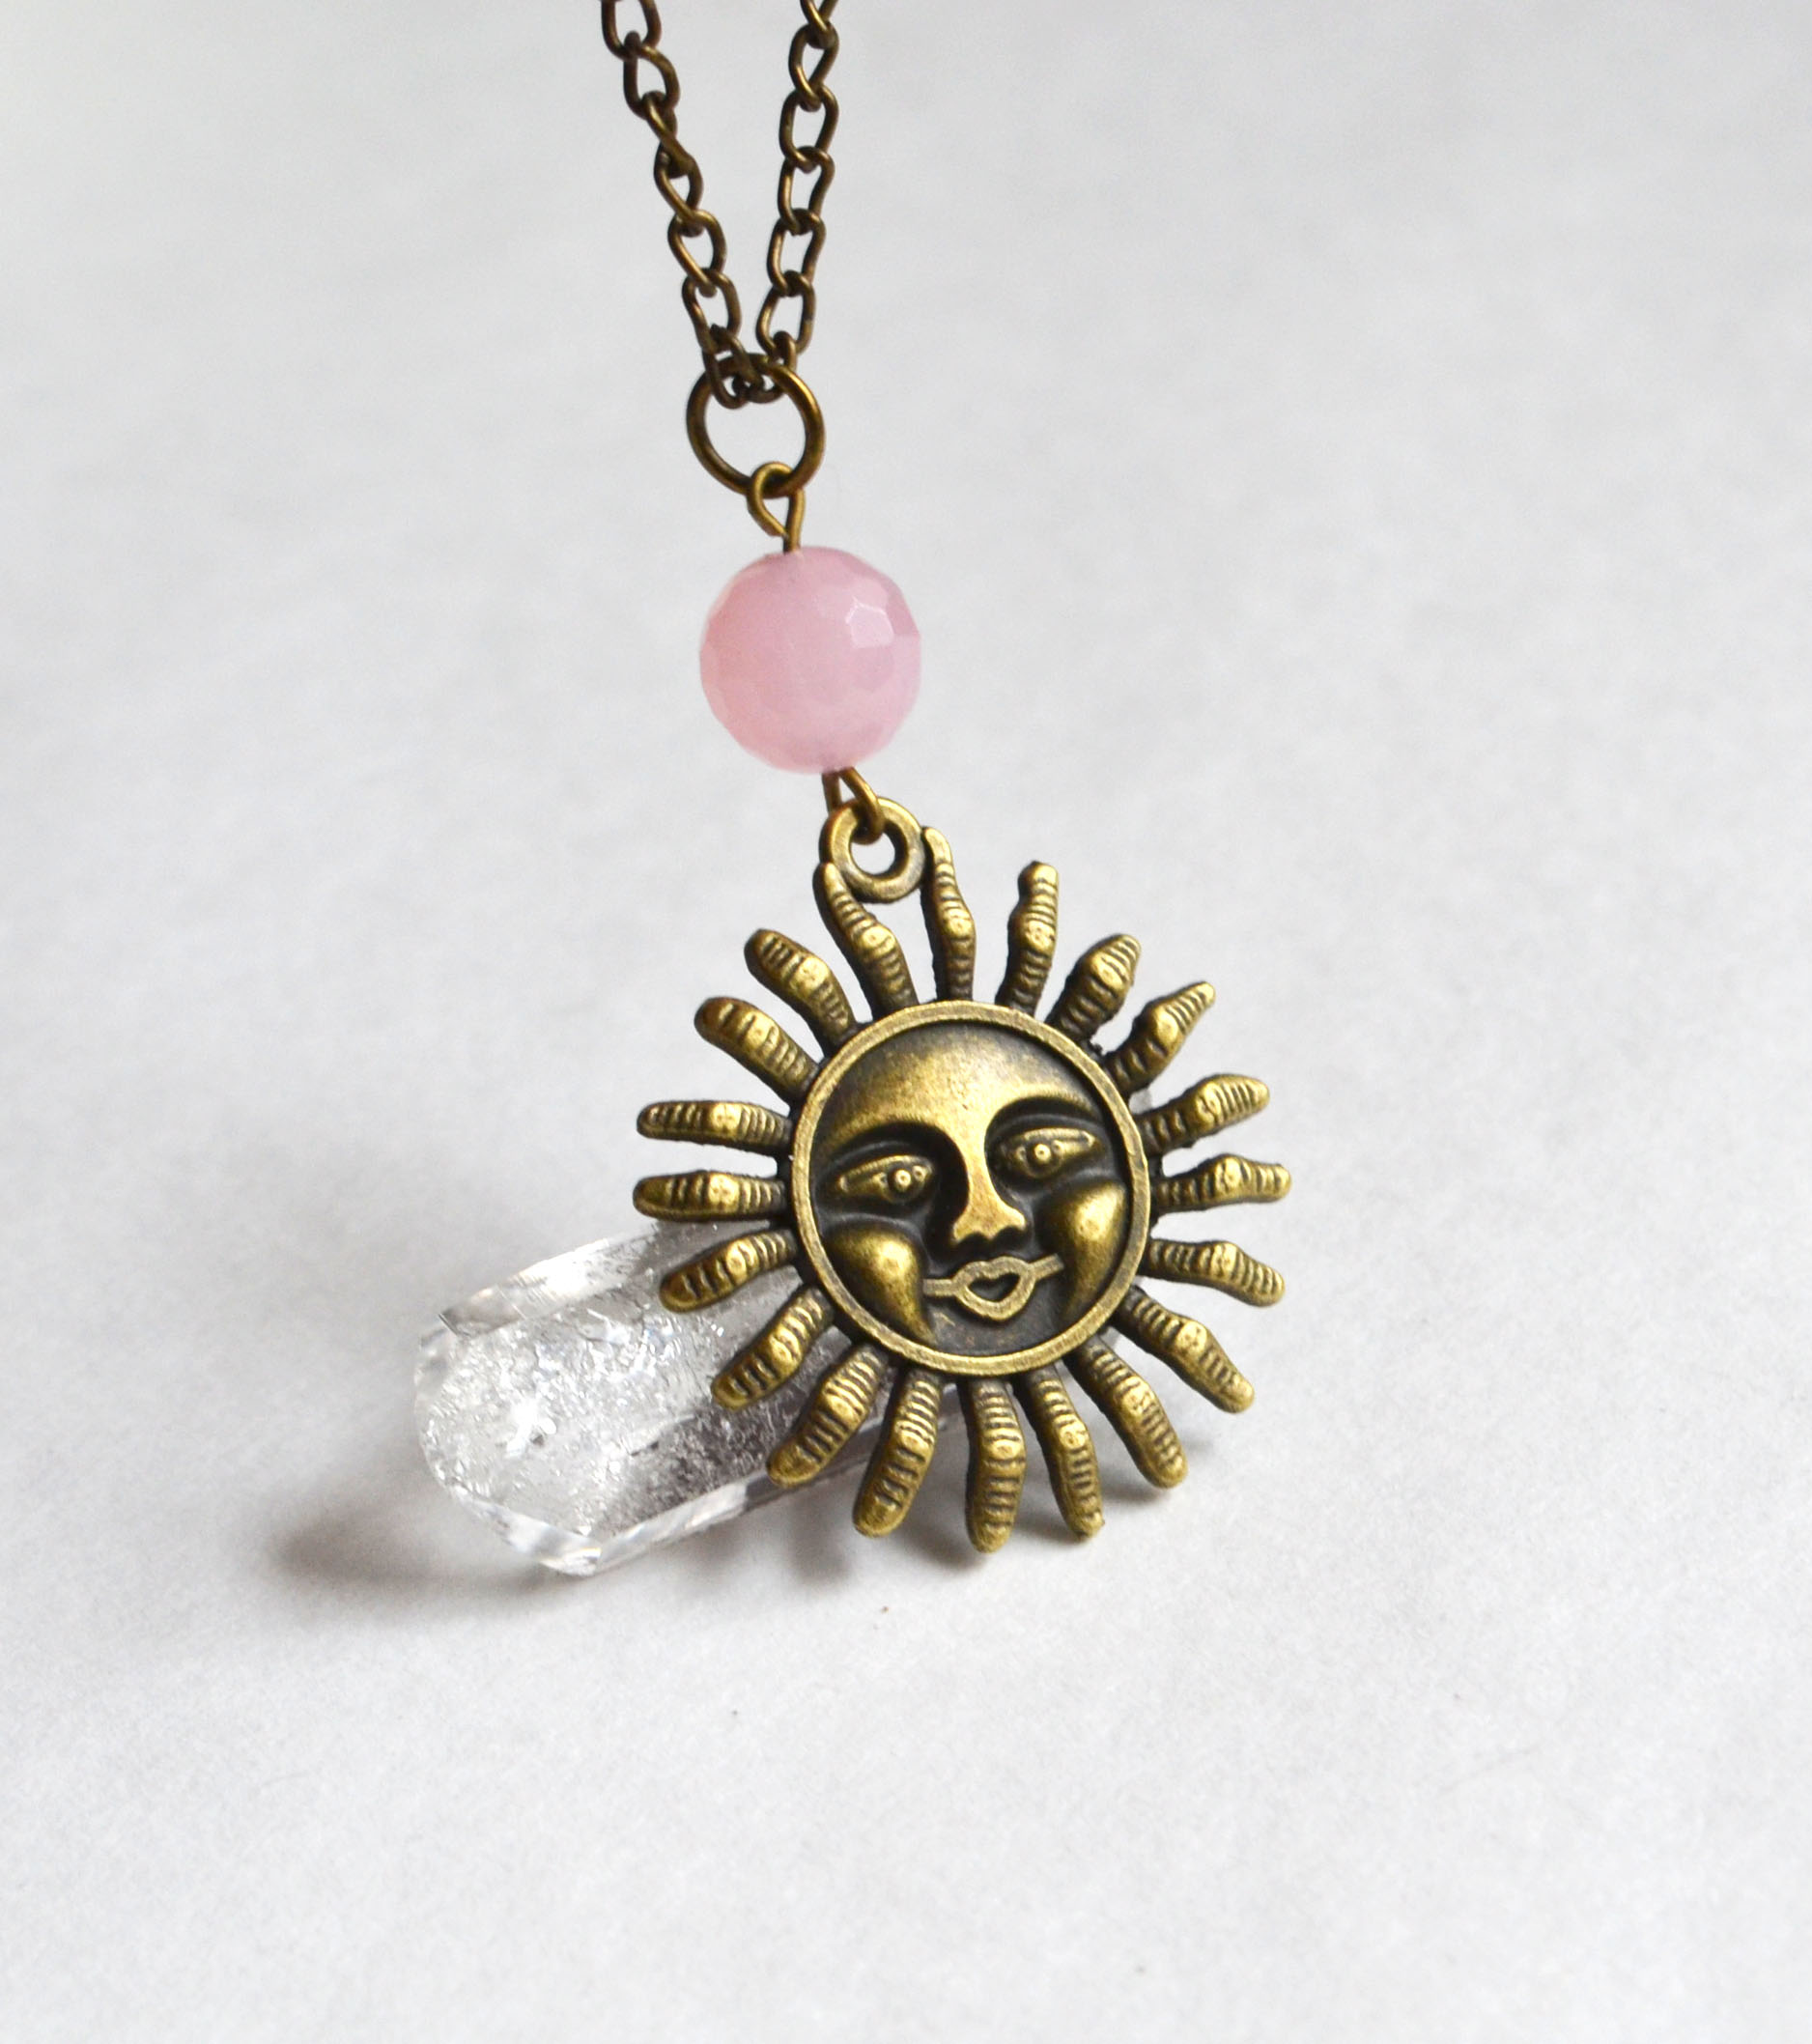 running east sun moon of starlight hare necklace product fullsizeoutput west the